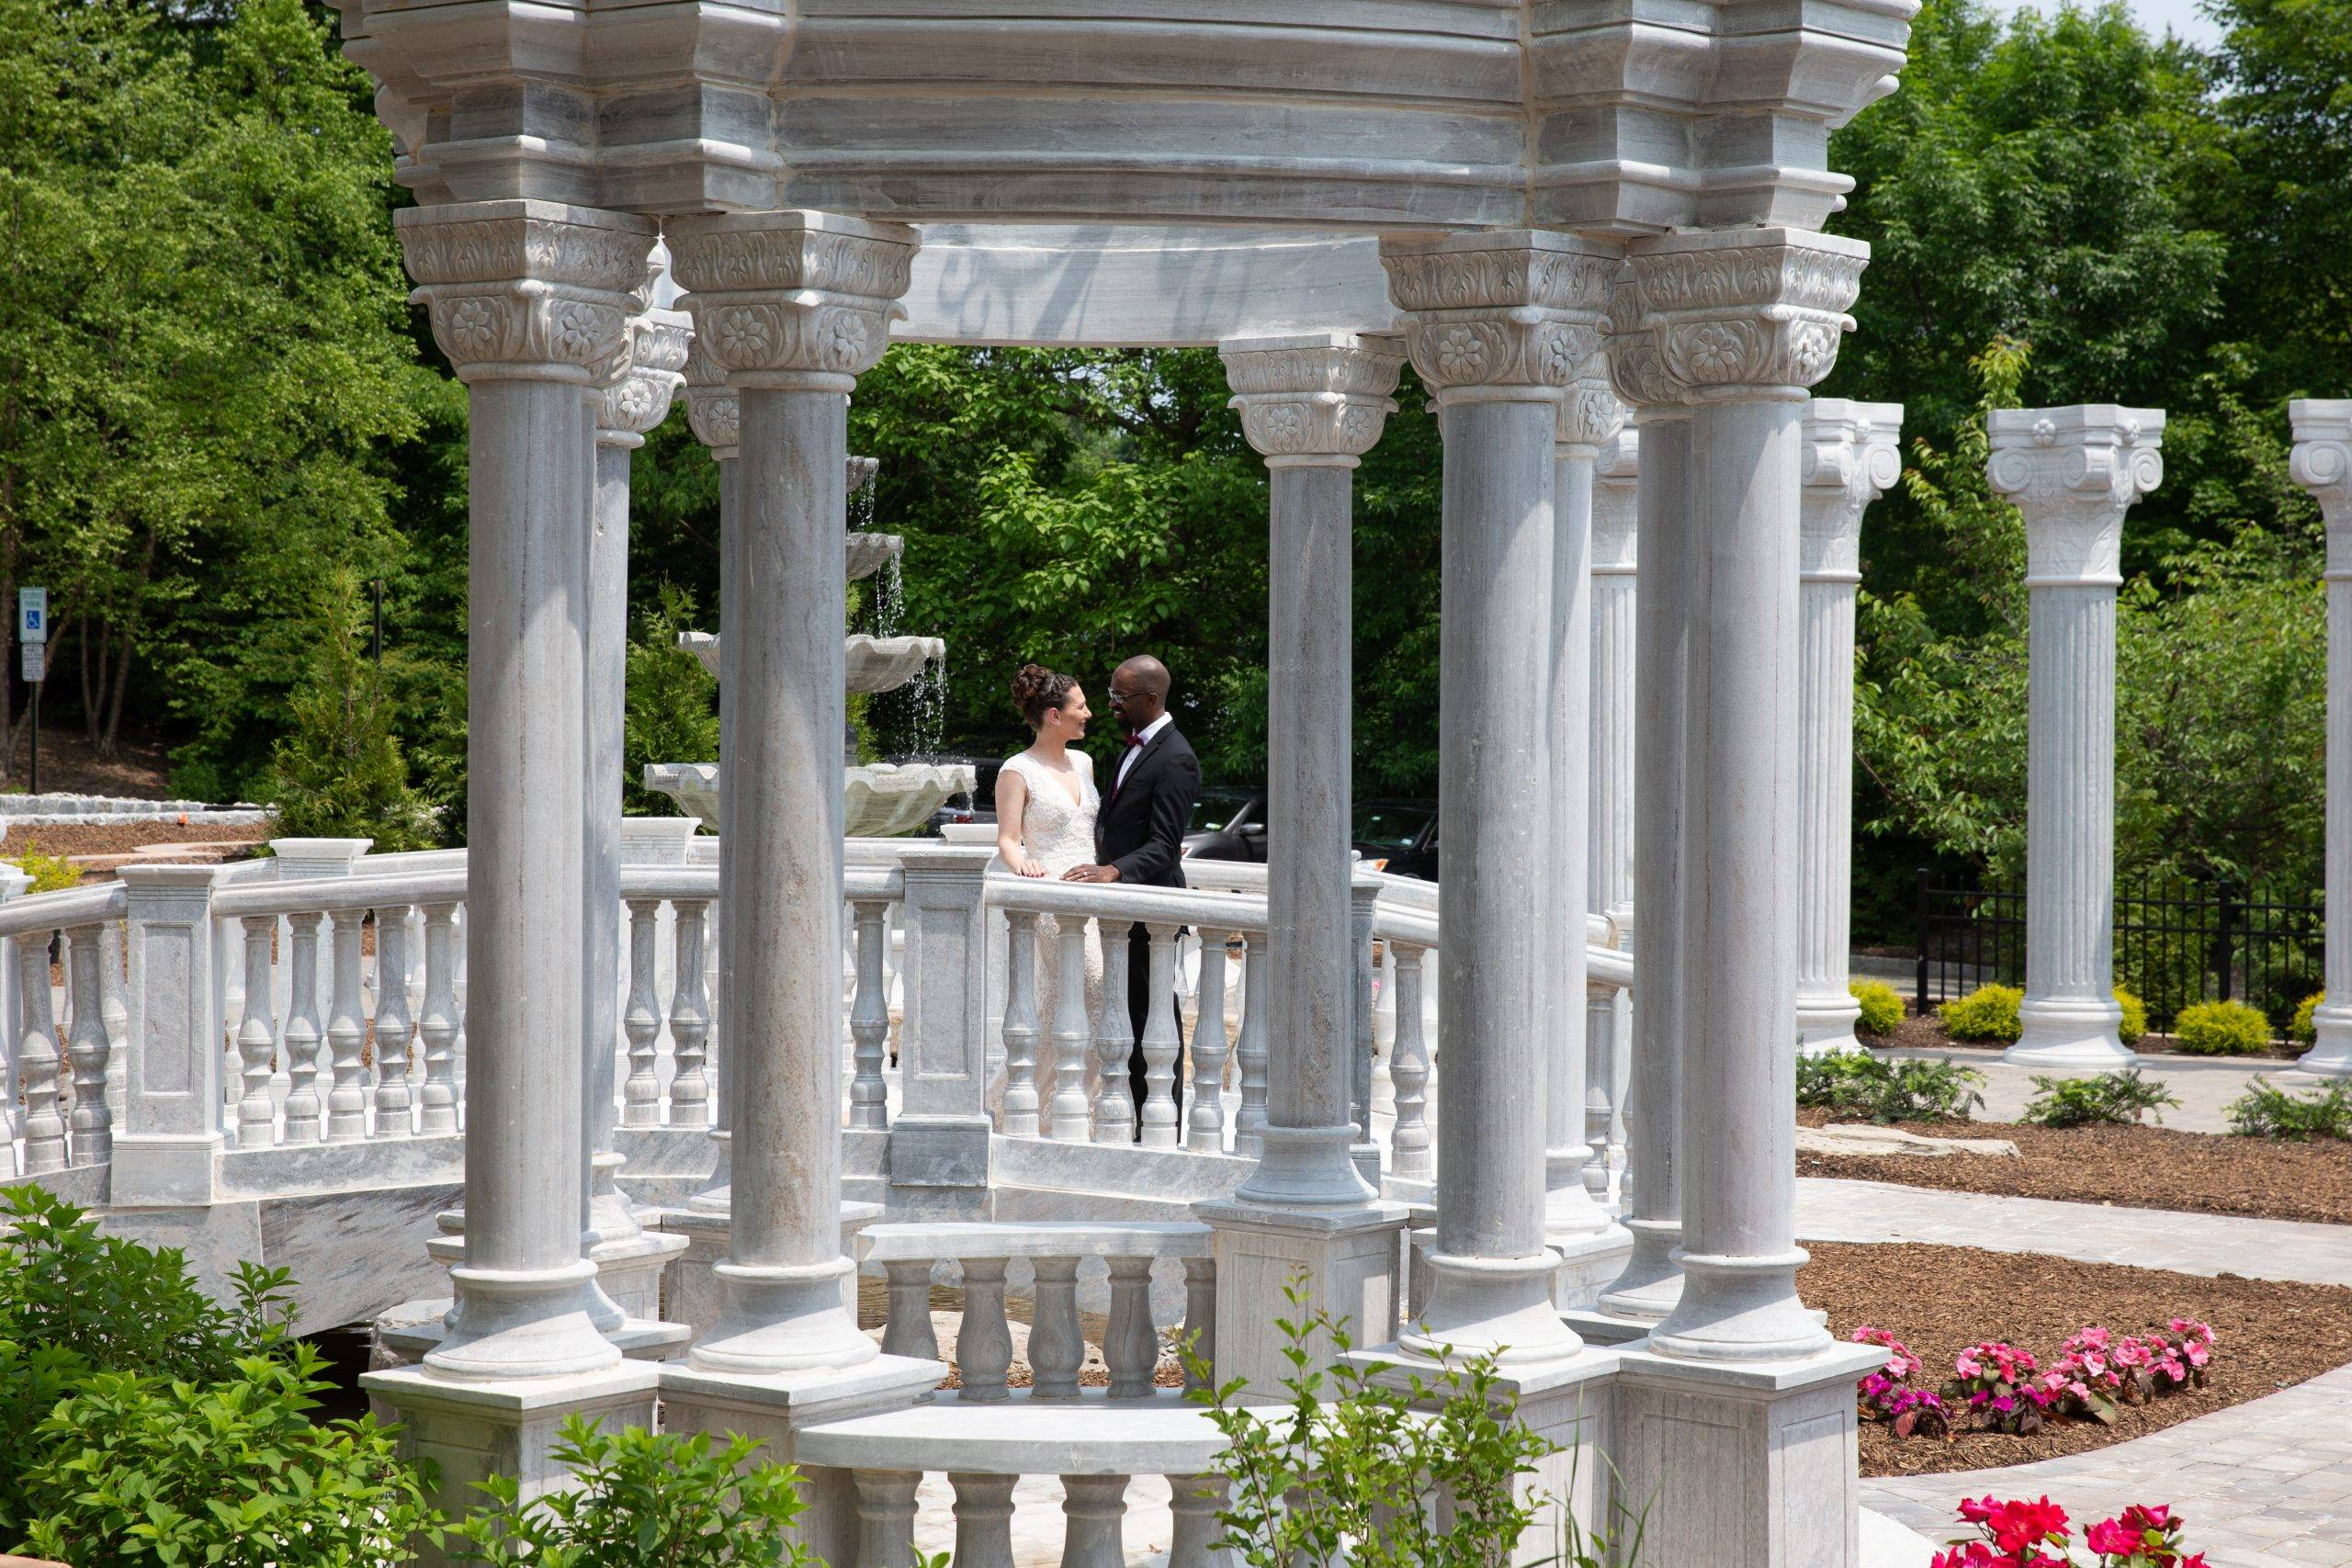 Meadow Wood wedding couple outside by columns and gazebo